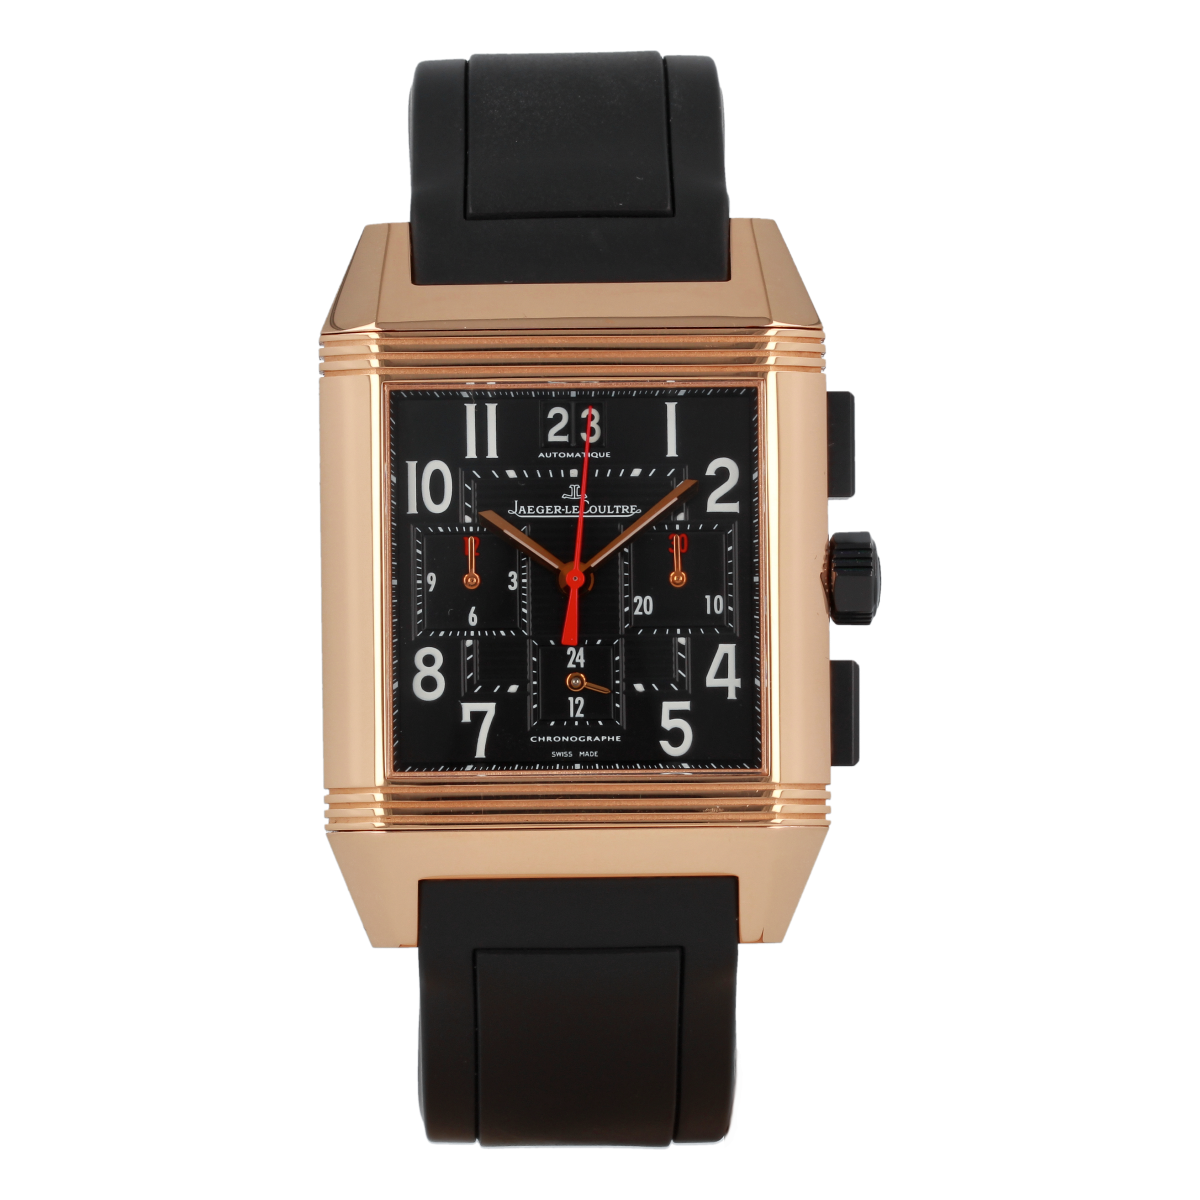 Jaeger-LeCoultre Reverso Squadra Chronograph GMT Rose Gold *Ltd. Ed.* | Buy pre-owned Jaeger-LeCoultre watch